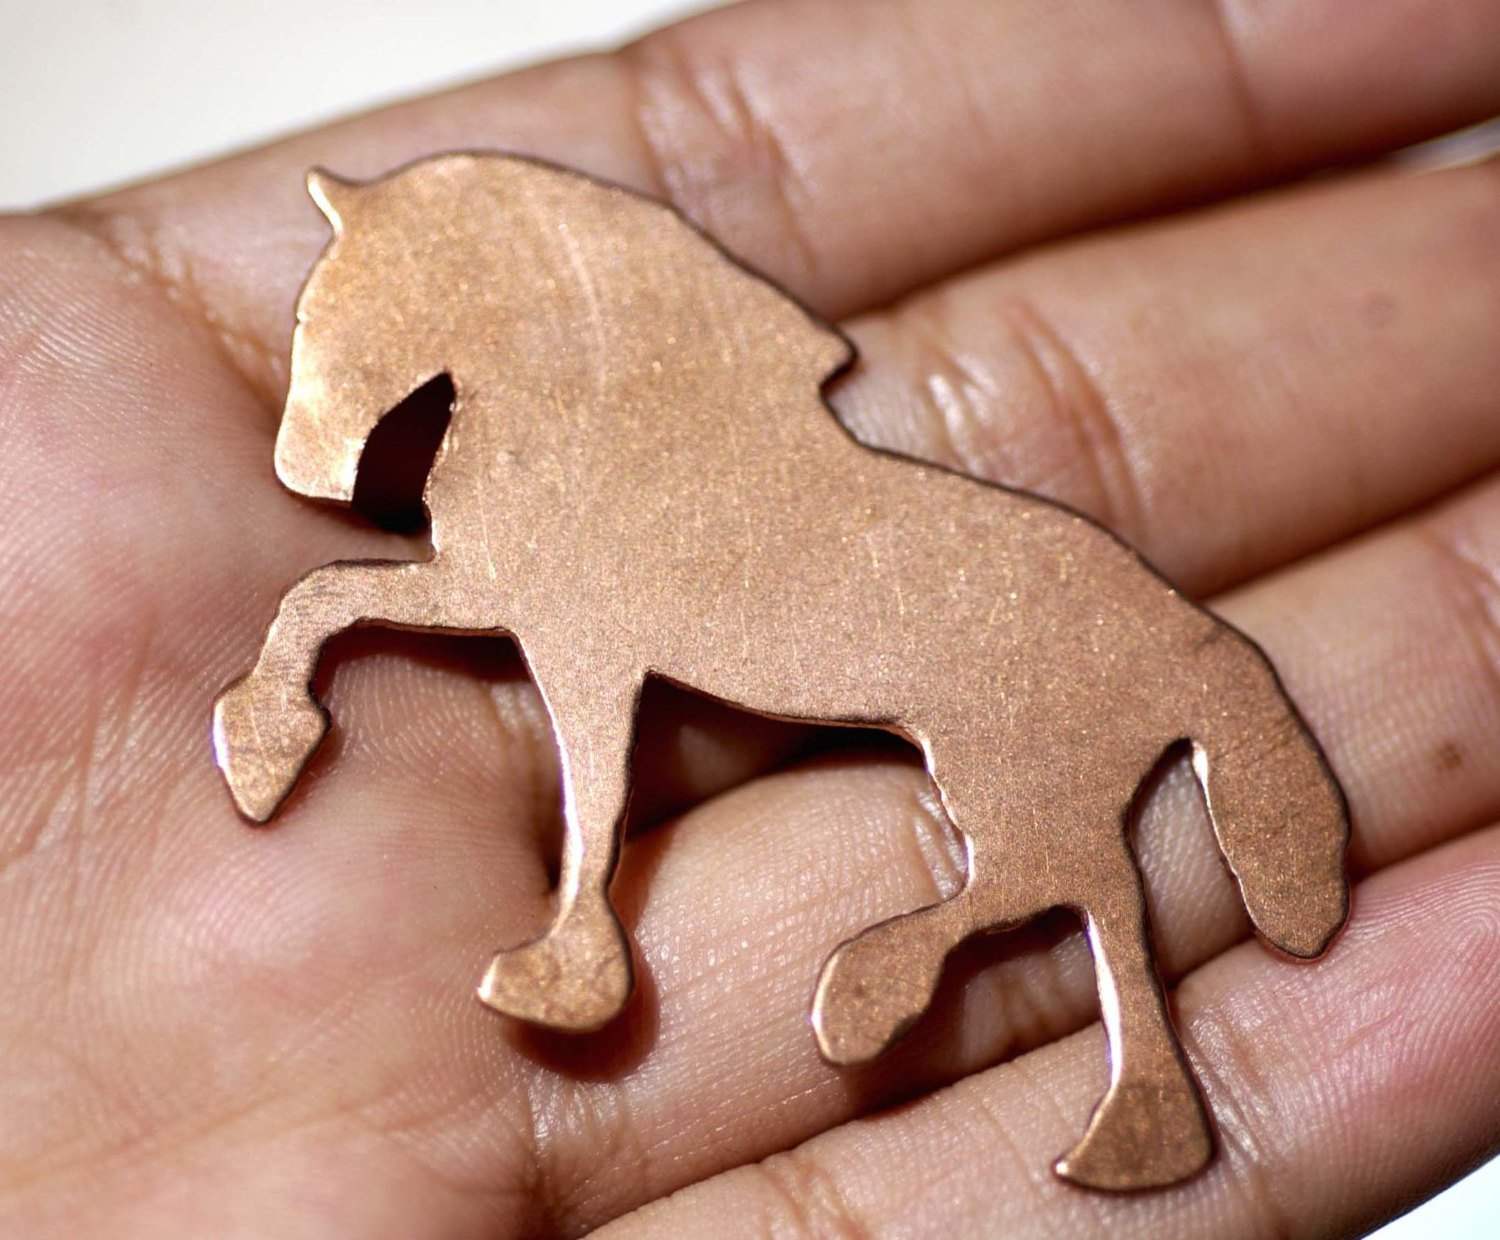 Clydesdale Horse Blanks Enameling Stamping Texturing Variety of Metals - 3 pieces